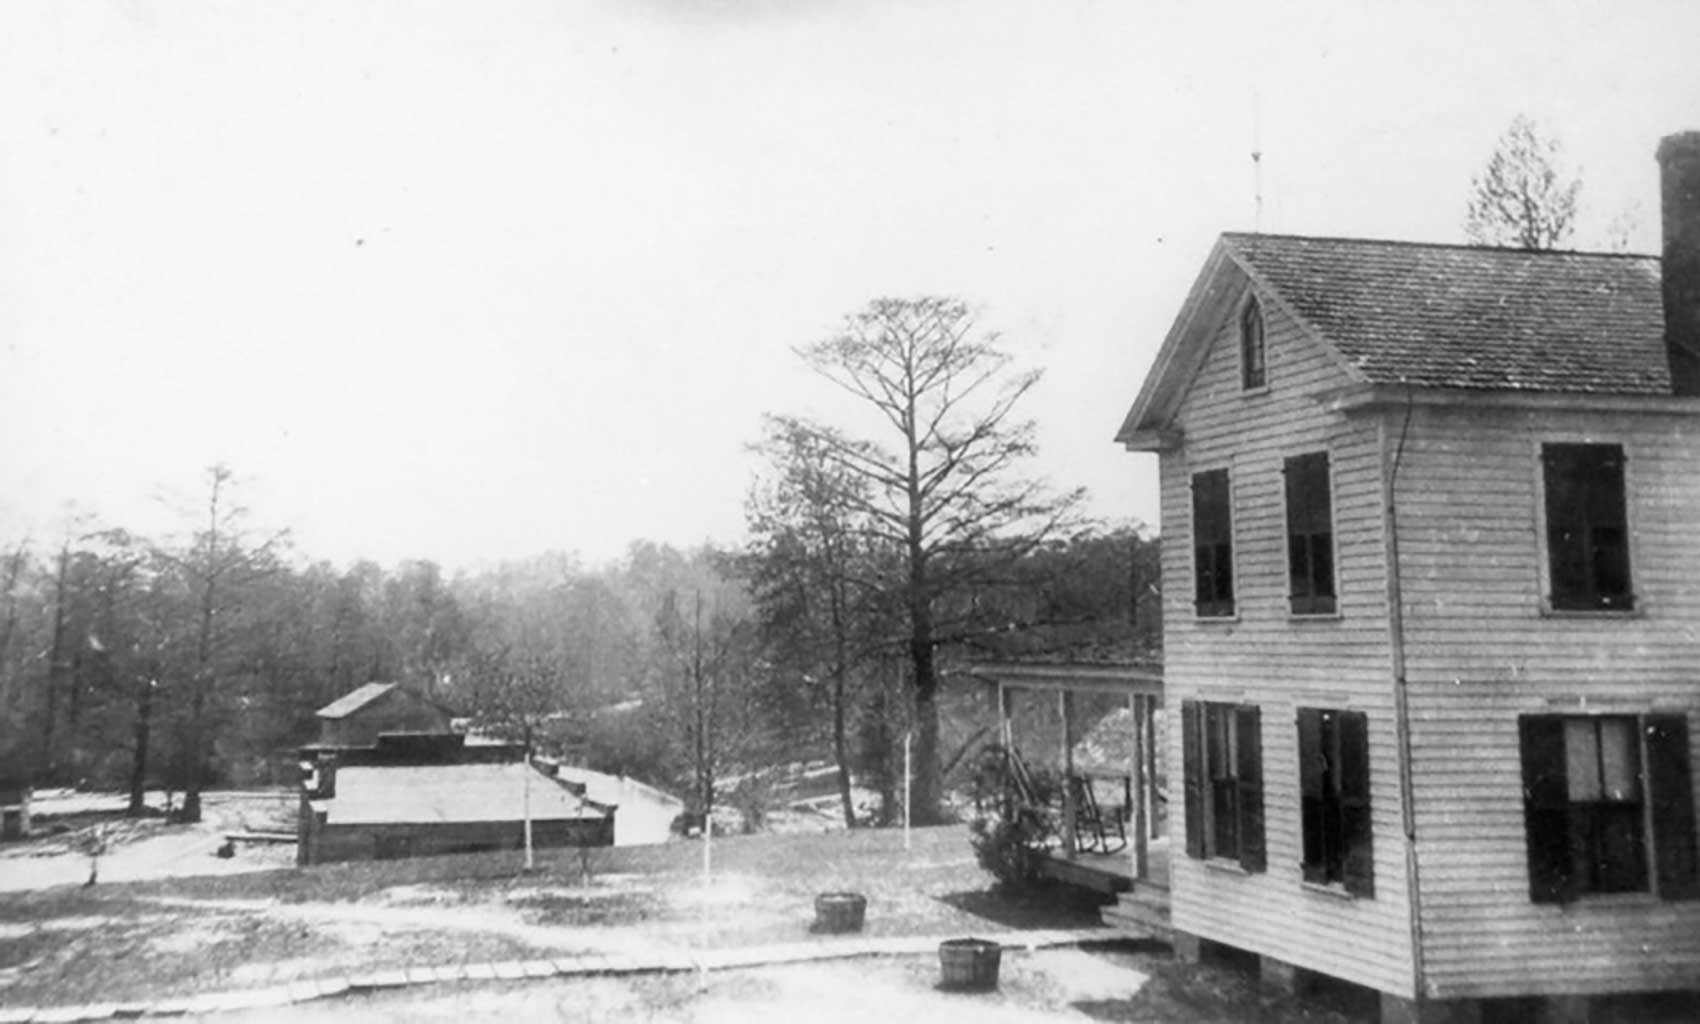 view-of-everets-creek-looking-over-wagners-store-saunders-house-img237